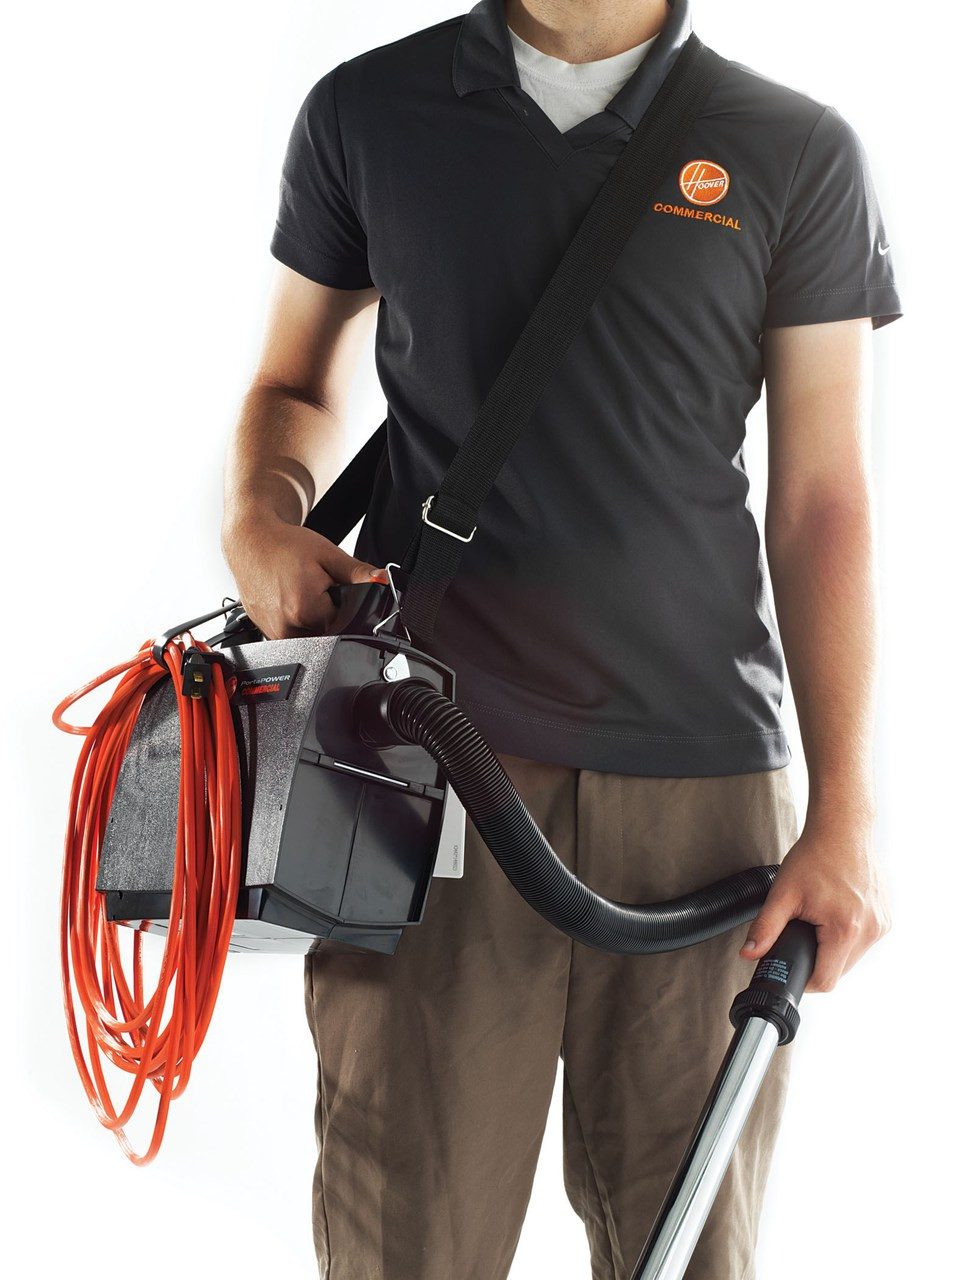 The Hoover PortaPower Lightweight Commercial Vacuum is convenient and easy to carry.